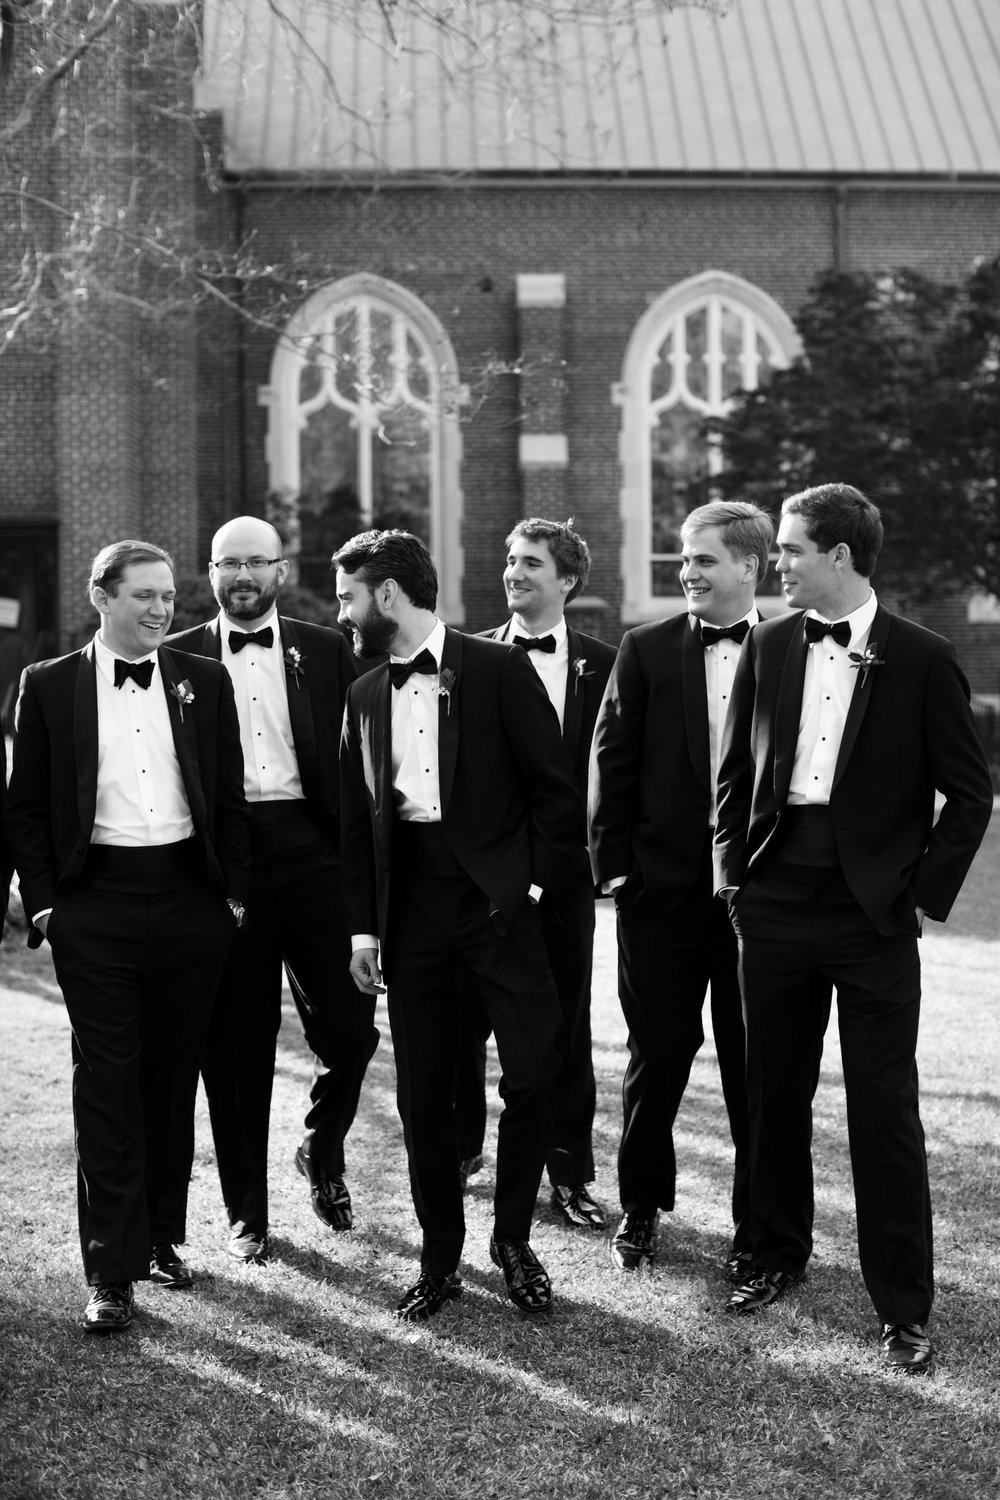 Wedding photography southern groomsmen black tie